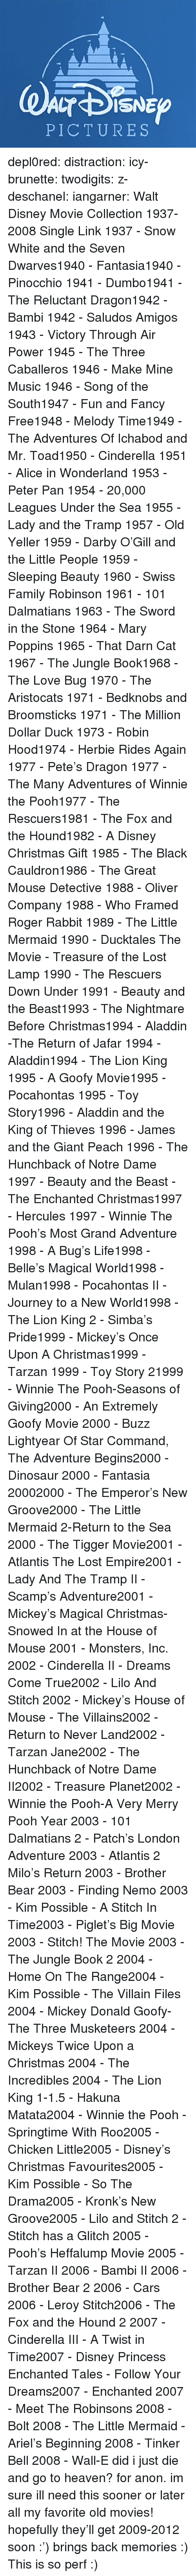 Goofy Movie: PICTURES depl0red:  distraction:   icy-brunette:   twodigits:   z-deschanel:   iangarner:   Walt Disney Movie Collection 1937-2008 Single Link      1937 - Snow White and the Seven Dwarves1940 - Fantasia1940 - Pinocchio 1941 - Dumbo1941 - The Reluctant Dragon1942 - Bambi 1942 - Saludos Amigos 1943 - Victory Through Air Power 1945 - The Three Caballeros 1946 - Make Mine Music 1946 - Song of the South1947 - Fun and Fancy Free1948 - Melody Time1949 - The Adventures Of Ichabod and Mr. Toad1950 - Cinderella 1951 - Alice in Wonderland 1953 - Peter Pan 1954 - 20,000 Leagues Under the Sea 1955 - Lady and the Tramp 1957 - Old Yeller 1959 - Darby O'Gill and the Little People 1959 - Sleeping Beauty 1960 - Swiss Family Robinson 1961 - 101 Dalmatians 1963 - The Sword in the Stone 1964 - Mary Poppins 1965 - That Darn Cat 1967 - The Jungle Book1968 - The Love Bug 1970 - The Aristocats 1971 - Bedknobs and Broomsticks 1971 - The Million Dollar Duck 1973 - Robin Hood1974 - Herbie Rides Again 1977 - Pete's Dragon 1977 - The Many Adventures of Winnie the Pooh1977 - The Rescuers1981 - The Fox and the Hound1982 - A Disney Christmas Gift 1985 - The Black Cauldron1986 - The Great Mouse Detective 1988 - Oliver  Company 1988 - Who Framed Roger Rabbit 1989 - The Little Mermaid 1990 - Ducktales The Movie - Treasure of the Lost Lamp 1990 - The Rescuers Down Under 1991 - Beauty and the Beast1993 - The Nightmare Before Christmas1994 - Aladdin -The Return of Jafar 1994 - Aladdin1994 - The Lion King 1995 - A Goofy Movie1995 - Pocahontas 1995 - Toy Story1996 - Aladdin and the King of Thieves 1996 - James and the Giant Peach 1996 - The Hunchback of Notre Dame 1997 - Beauty and the Beast - The Enchanted Christmas1997 - Hercules 1997 - Winnie The Pooh's Most Grand Adventure 1998 - A Bug's Life1998 - Belle's Magical World1998 - Mulan1998 - Pocahontas II - Journey to a New World1998 - The Lion King 2 - Simba's Pride1999 - Mickey's Once Upon A Christmas1999 - Tarzan 1999 - Toy Story 21999 - Wi